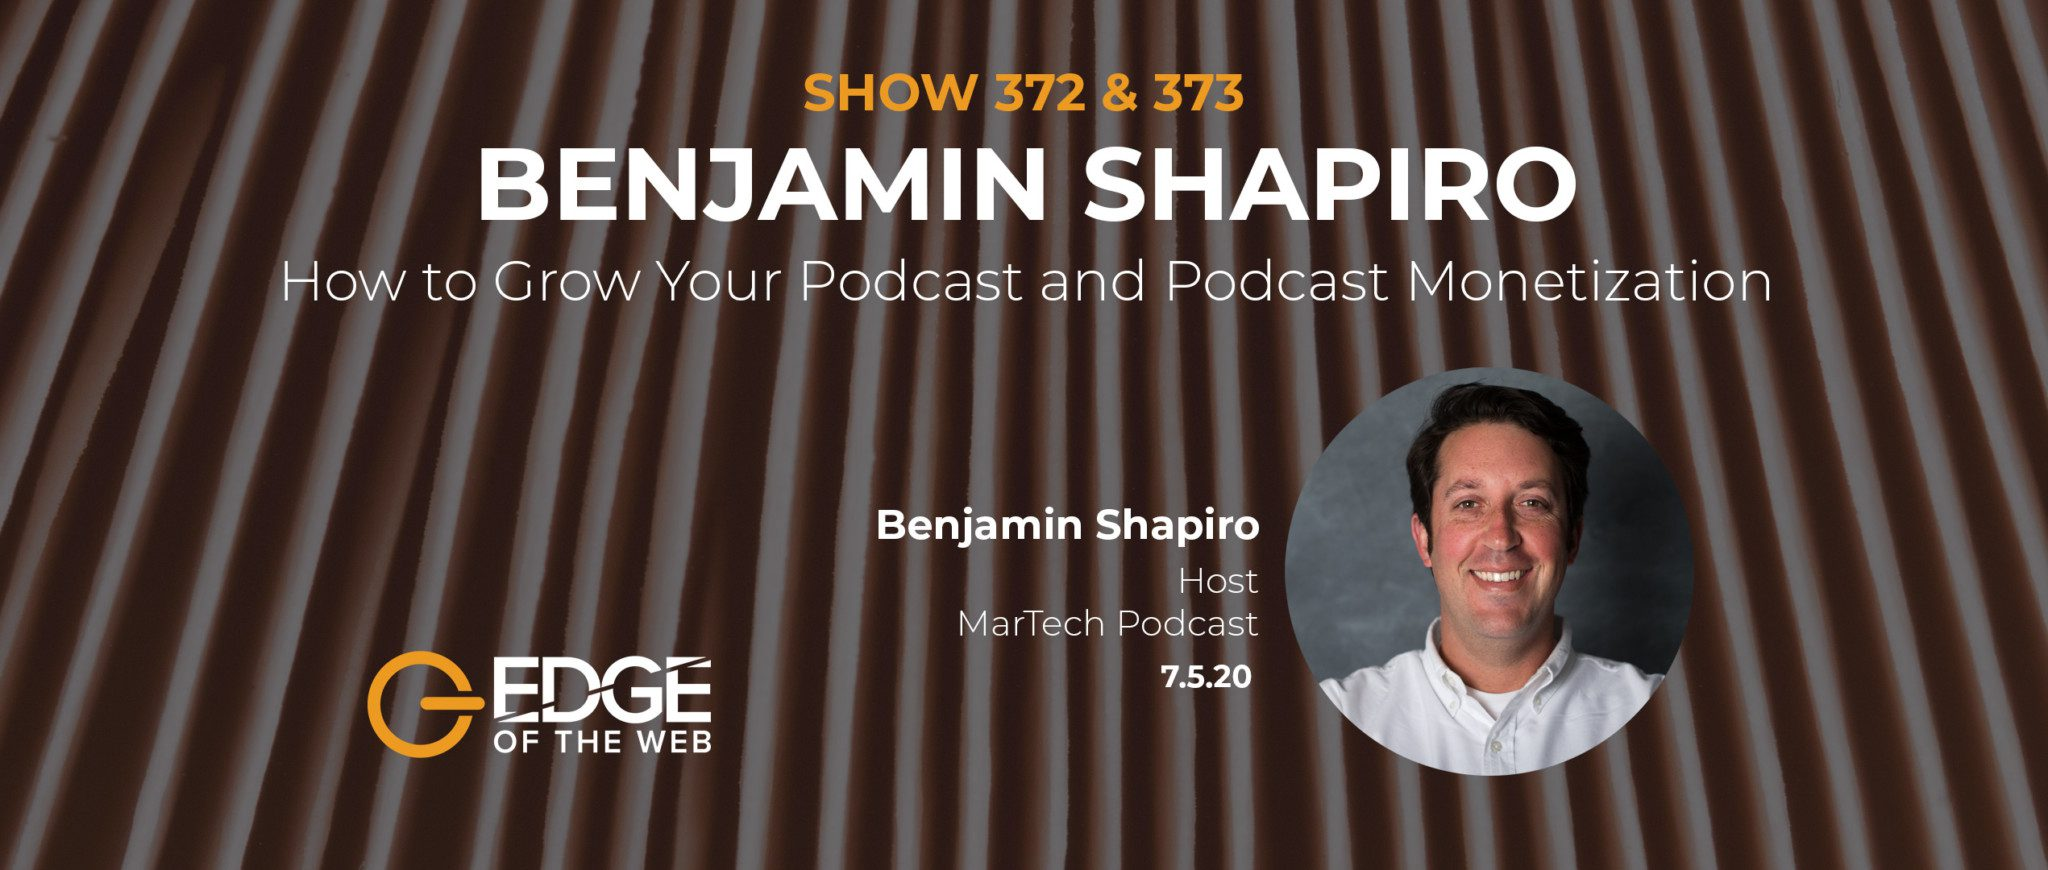 EP 372 & 373: How to Grow Your Podcast with Benjamin Shapiro